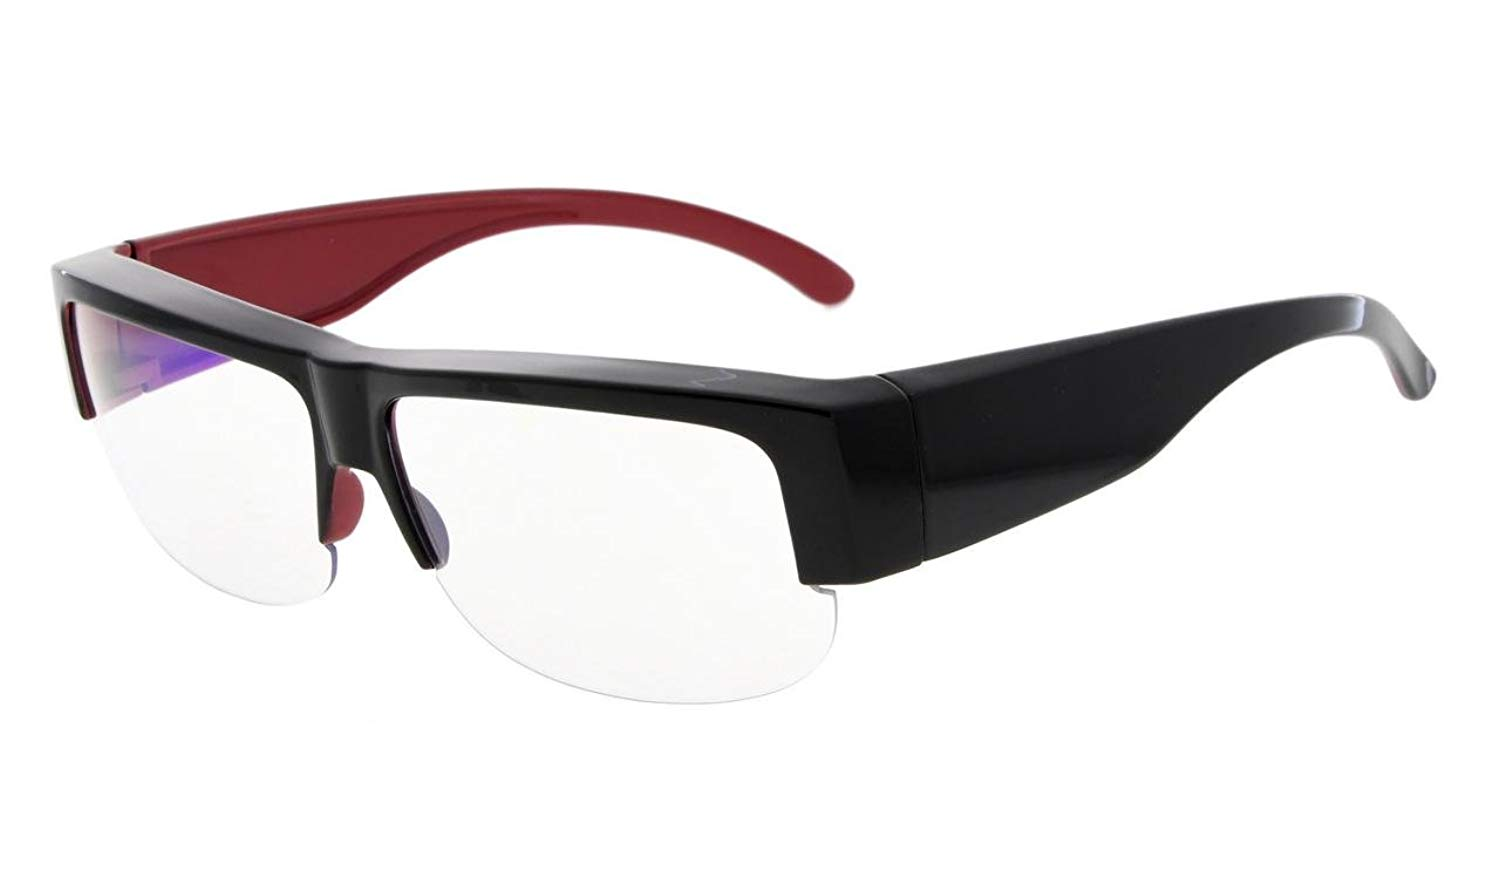 b4736b952c06 Get Quotations · Eyekepper Anti-Blue Light Blocking Computer Glasses,Fit  Over Readers and Prescription Glasses with